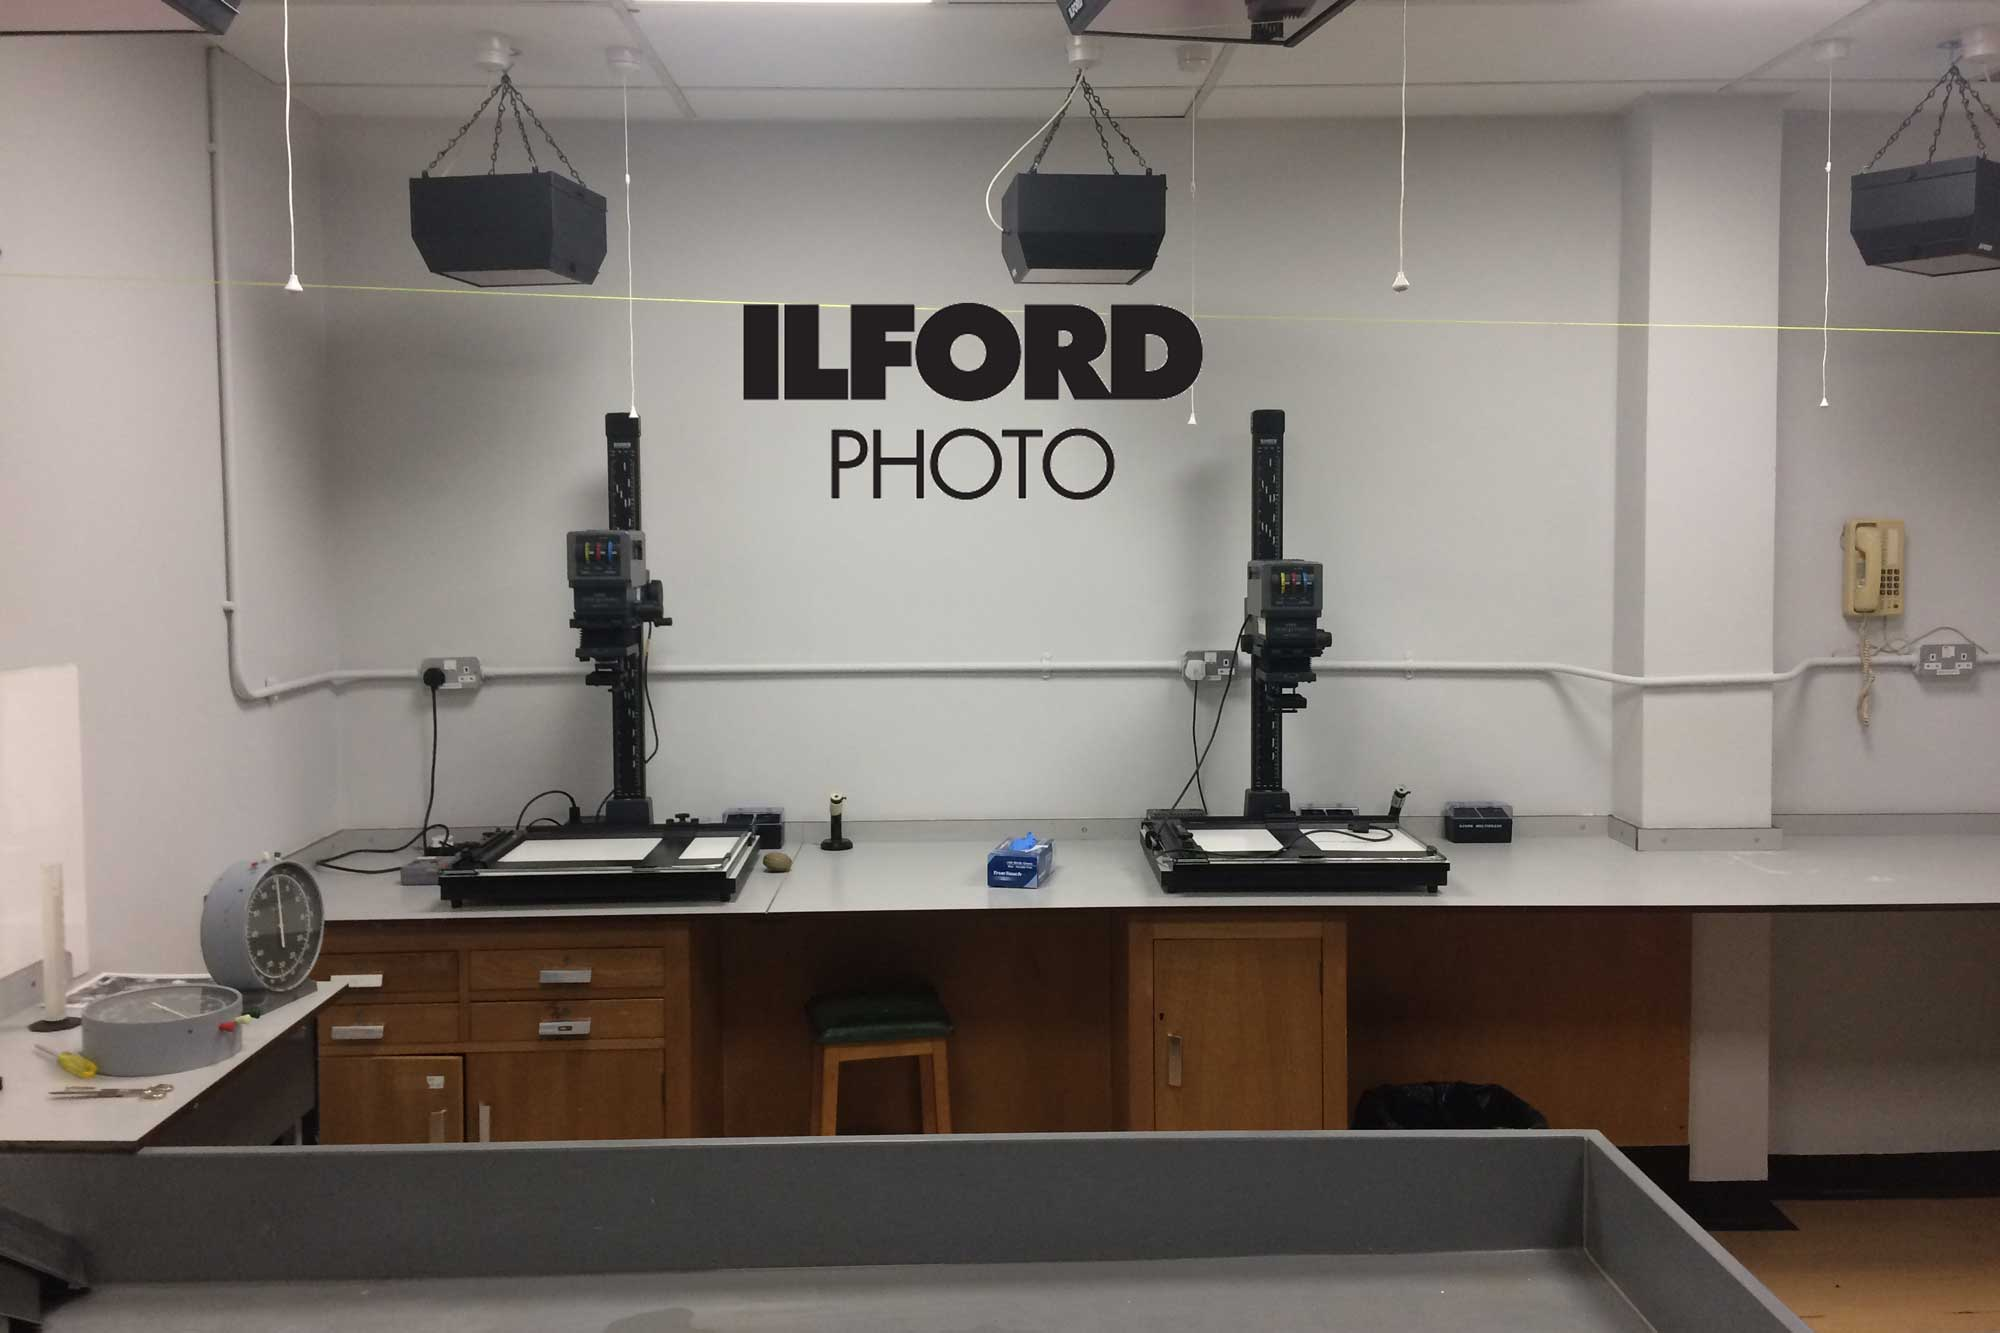 Ilford Photo darkroom (Pic: ILFORD Photo)